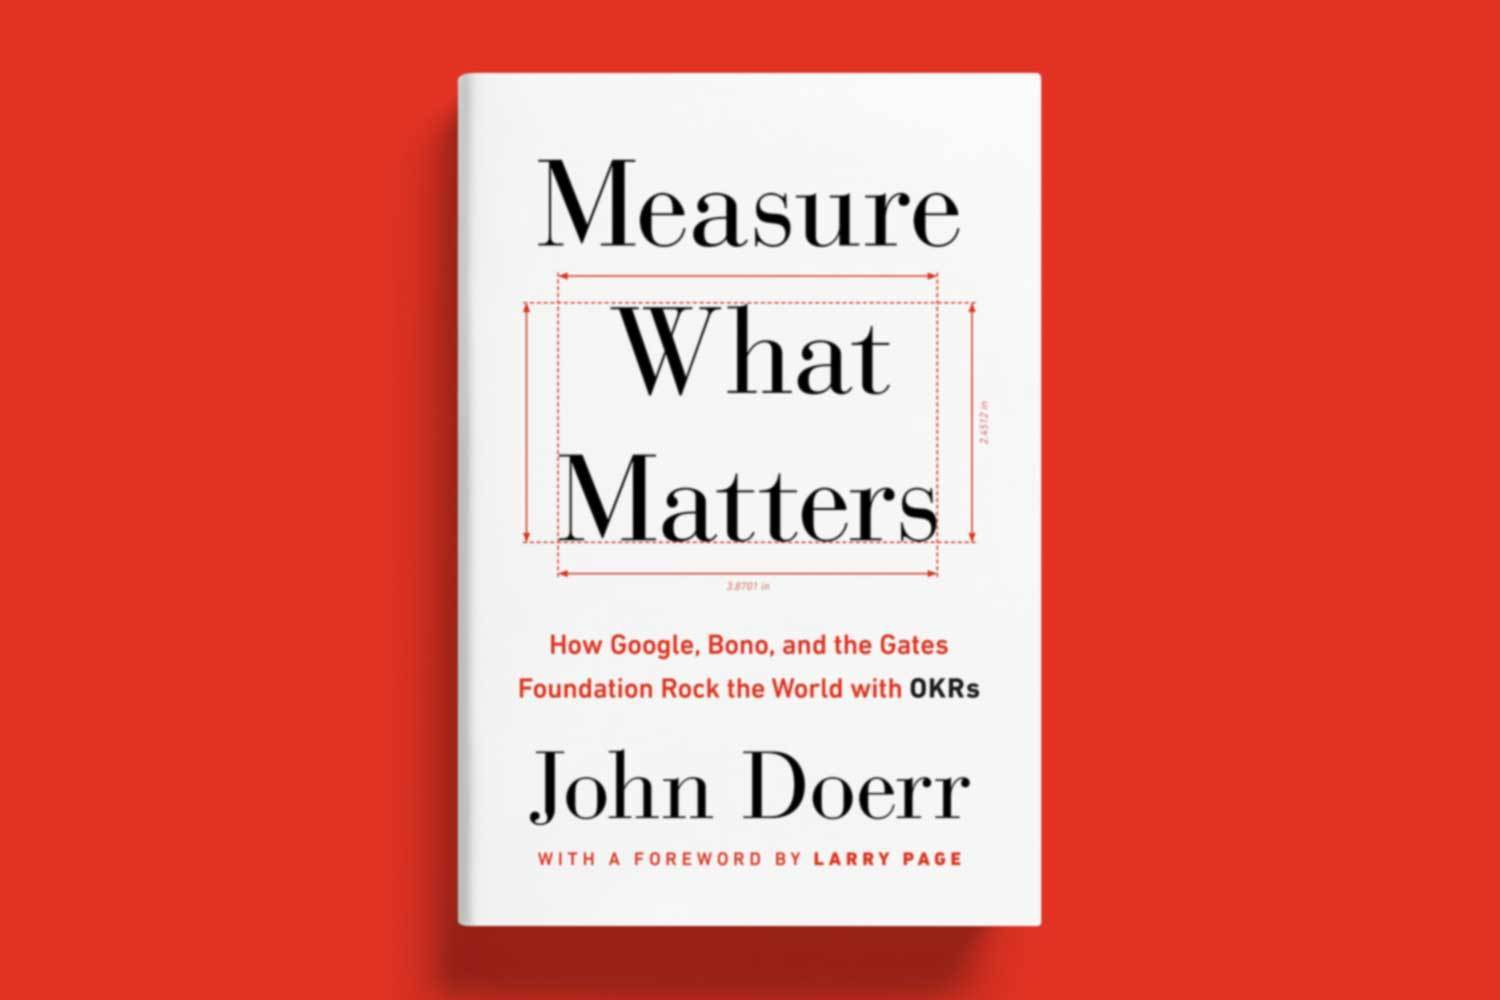 John Doerr's Measure What Matters is available to order